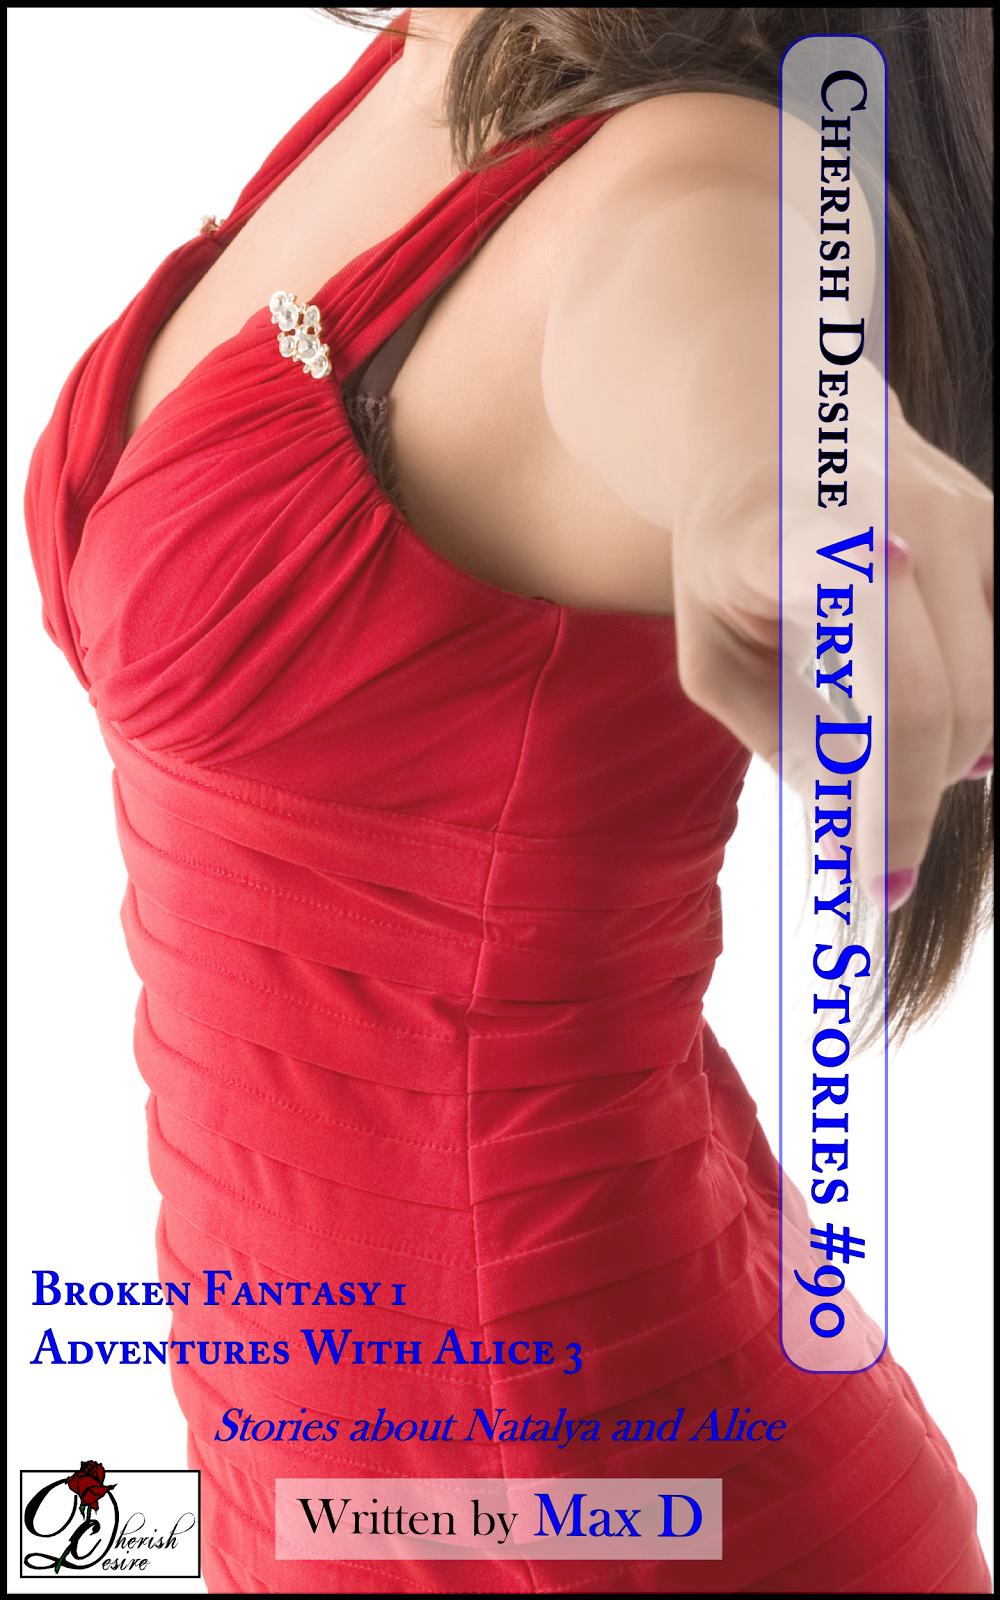 Cherish Desire: Very Dirty Stories #90, Max D, erotica